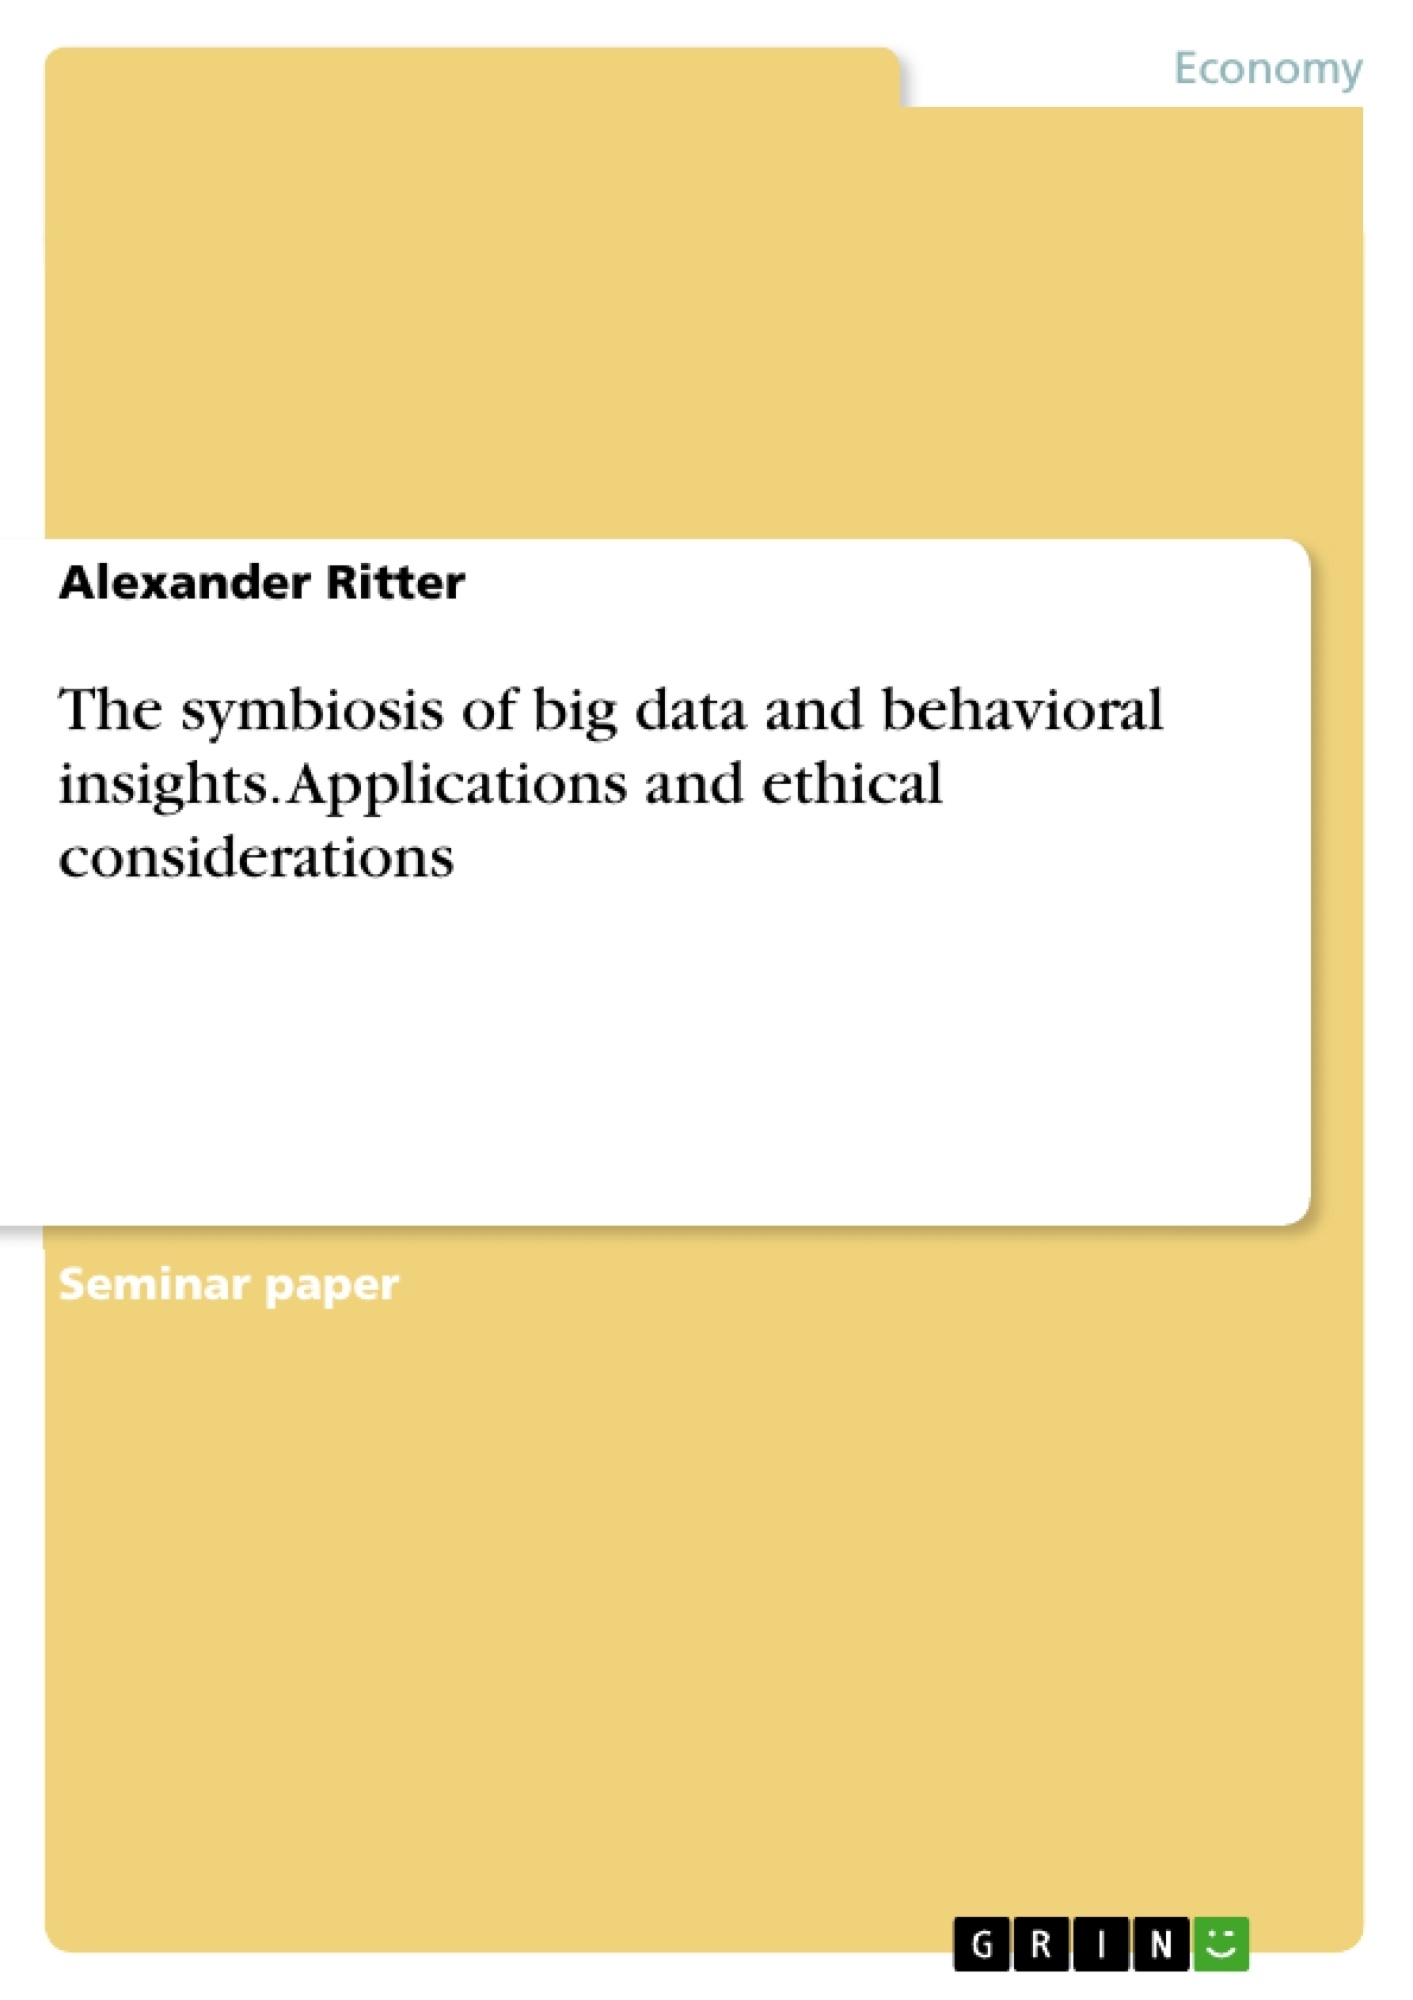 Title: The symbiosis of big data and behavioral insights. Applications and ethical considerations